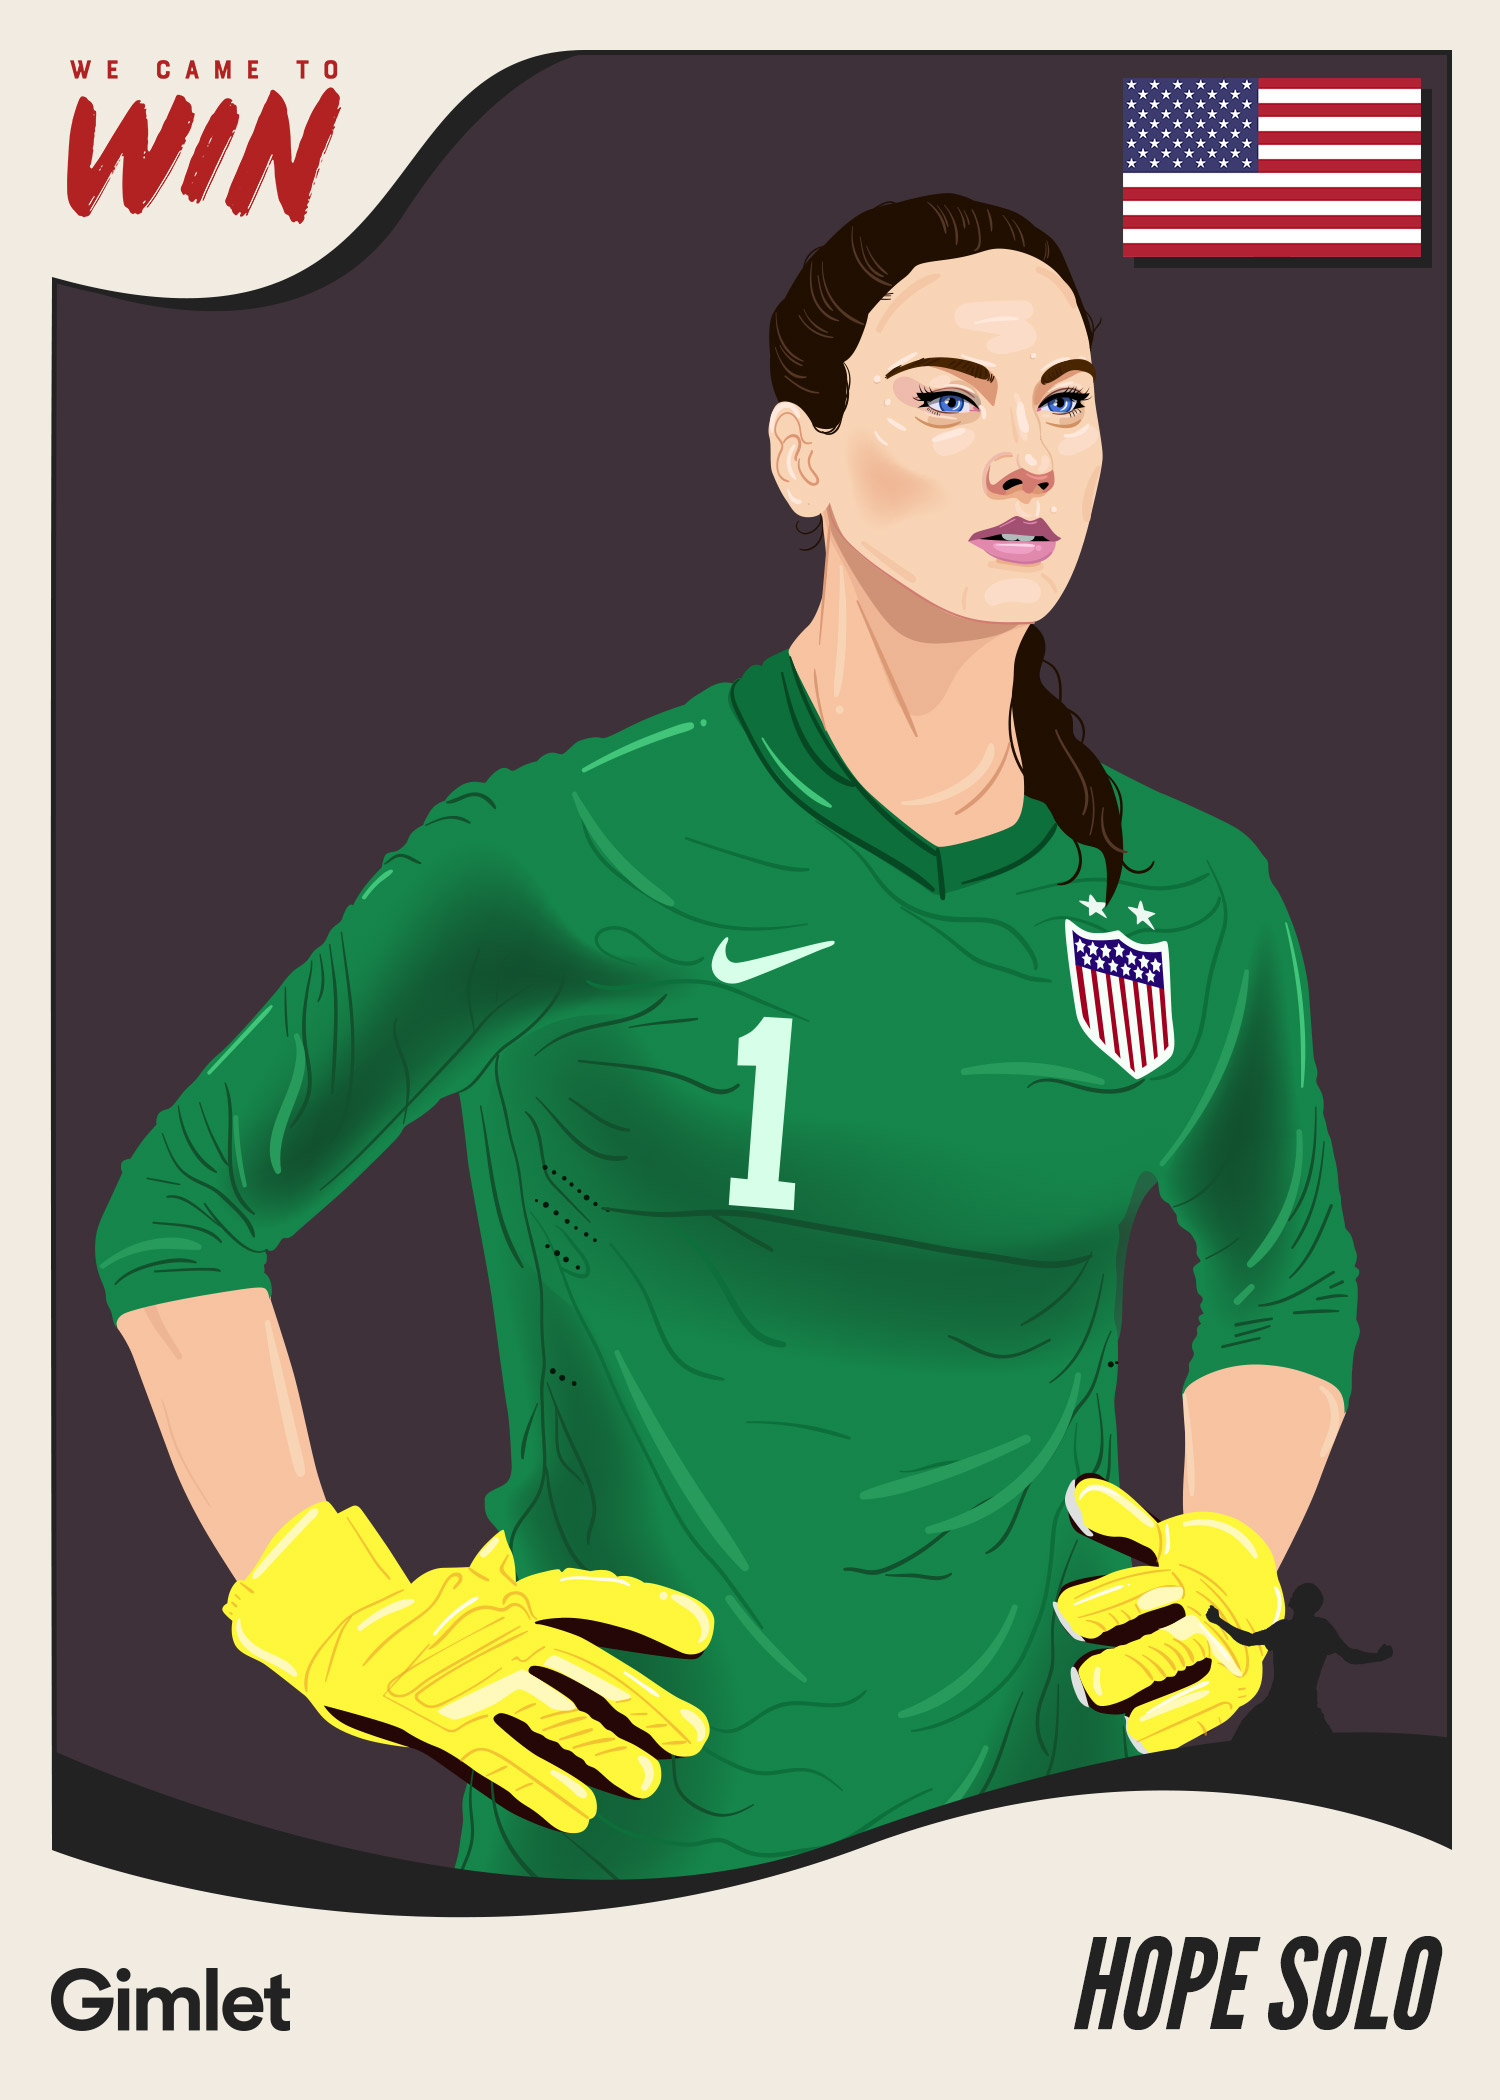 20180424_WCTW-Player-Card-Hope-Solo-mallory-heyer.jpg